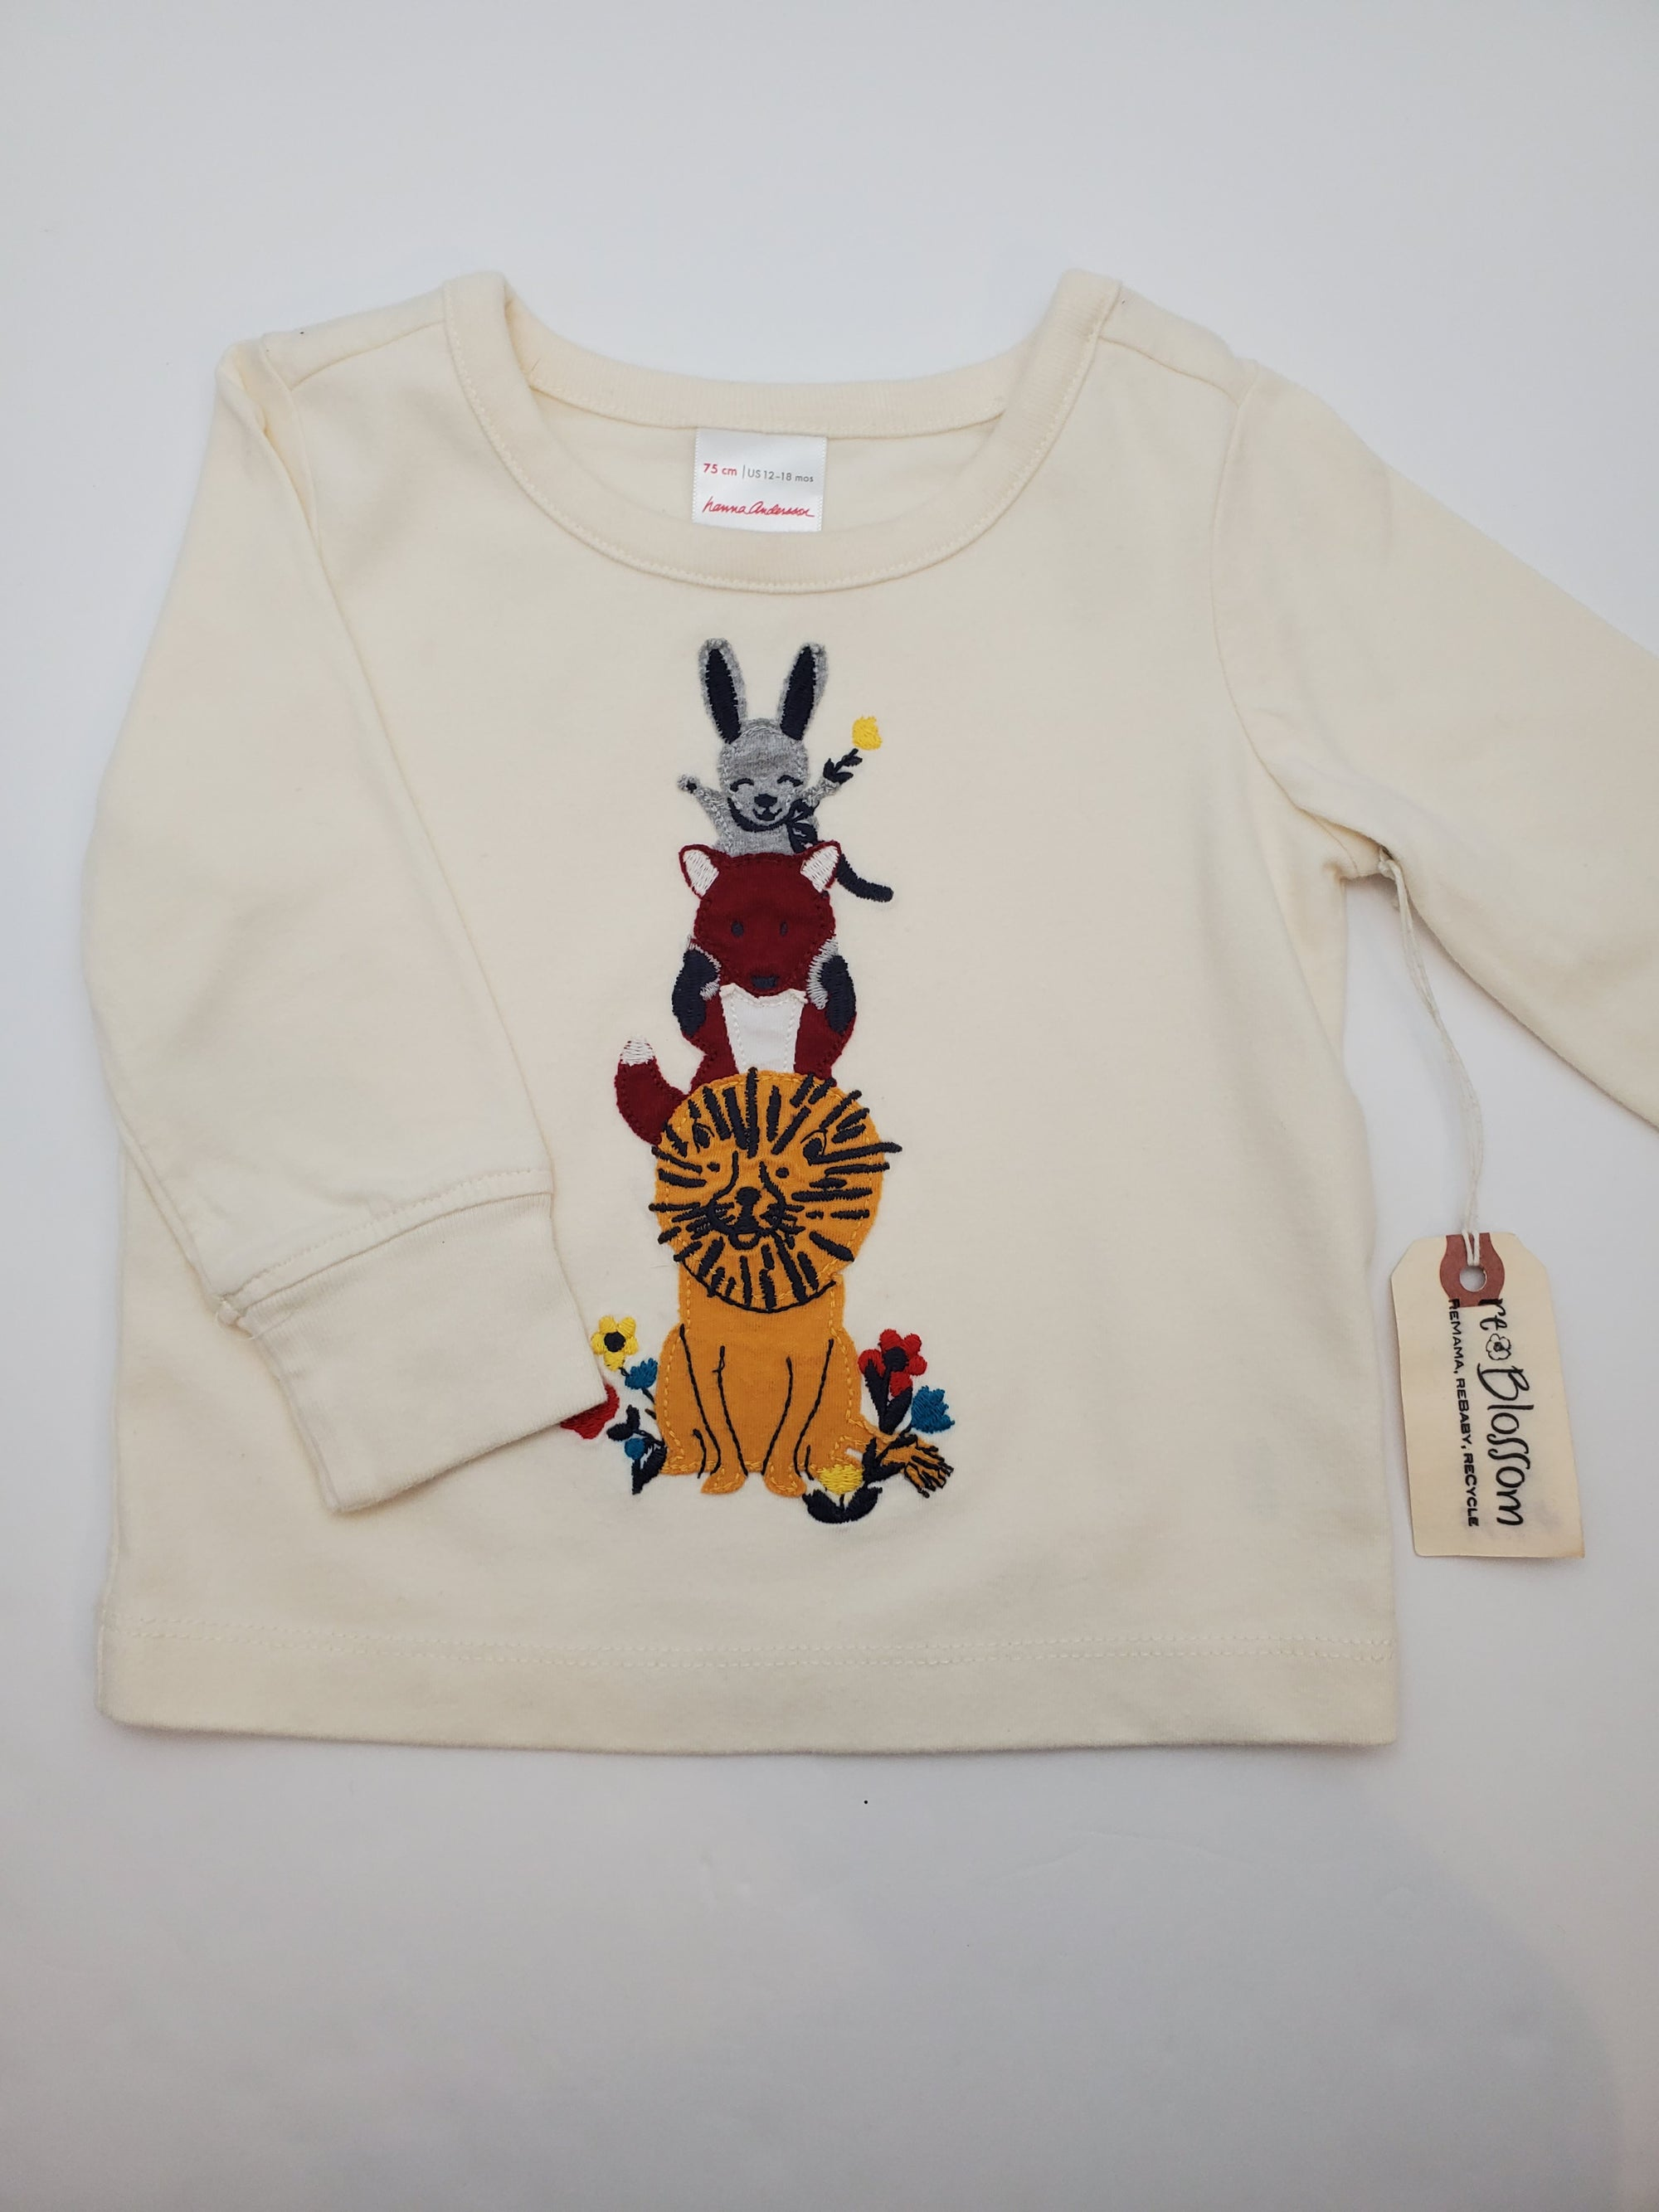 Resale 12-18 m Hanna Andersson Animal Friends Long Sleeve Shirt